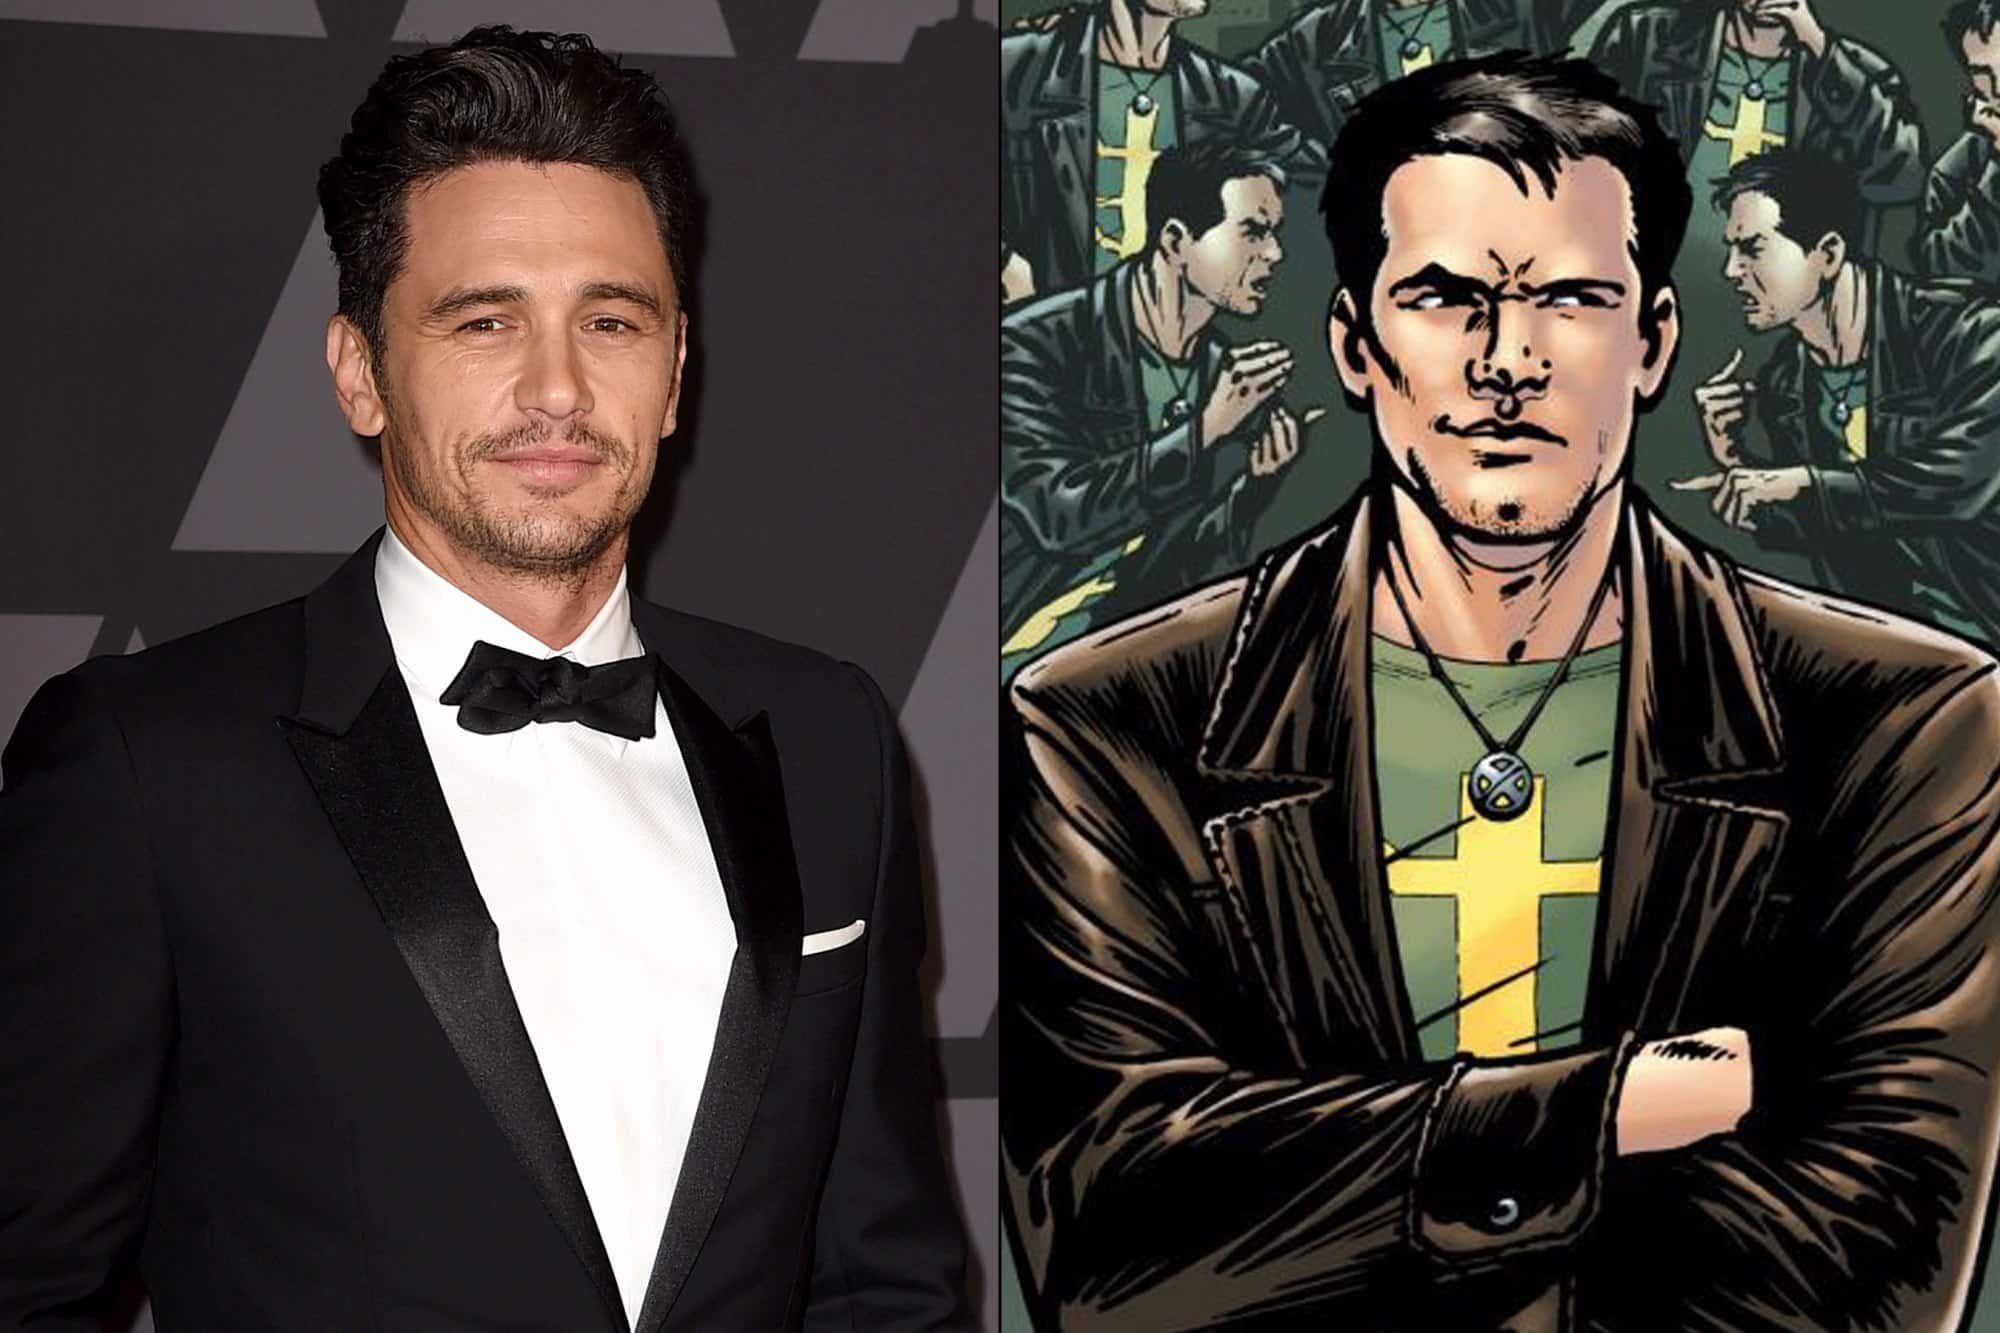 The Next X-Men Spin-Off, James Franco's Multiple Man